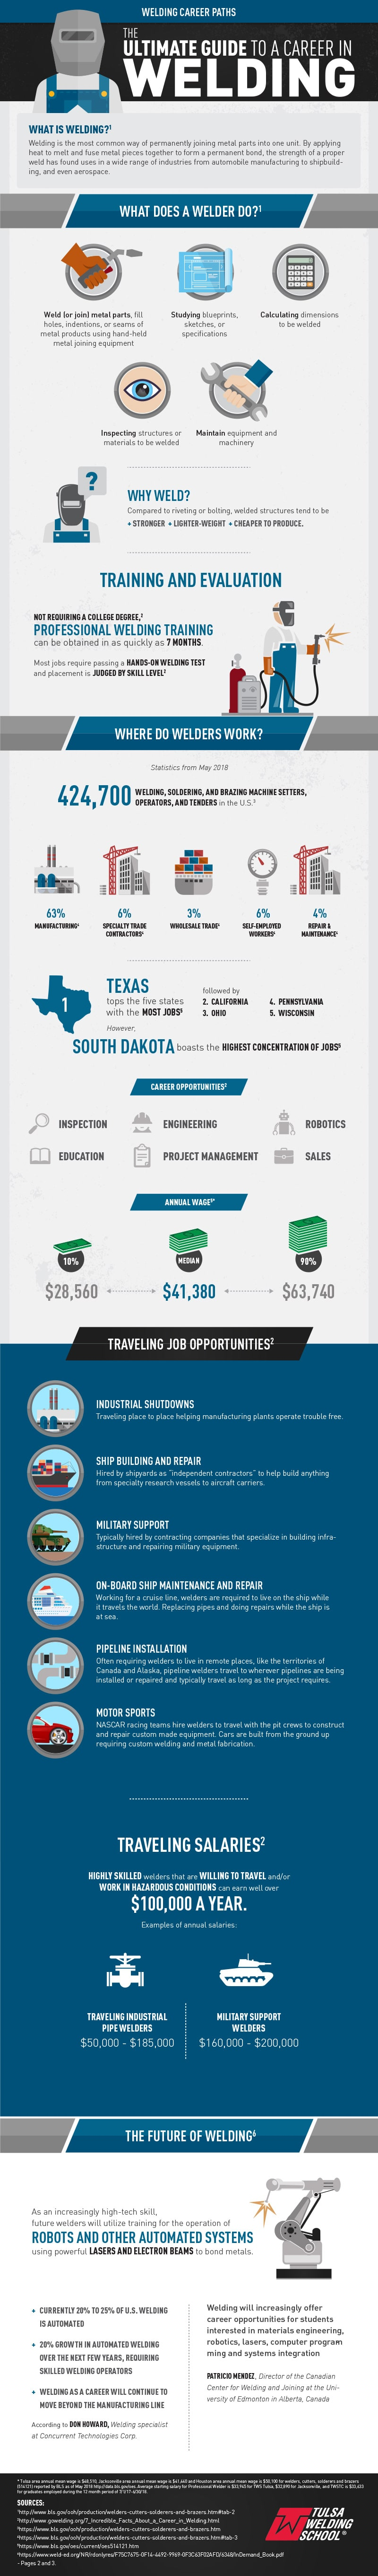 welding as a career exciting rewarding and secure careeronestop this infographic